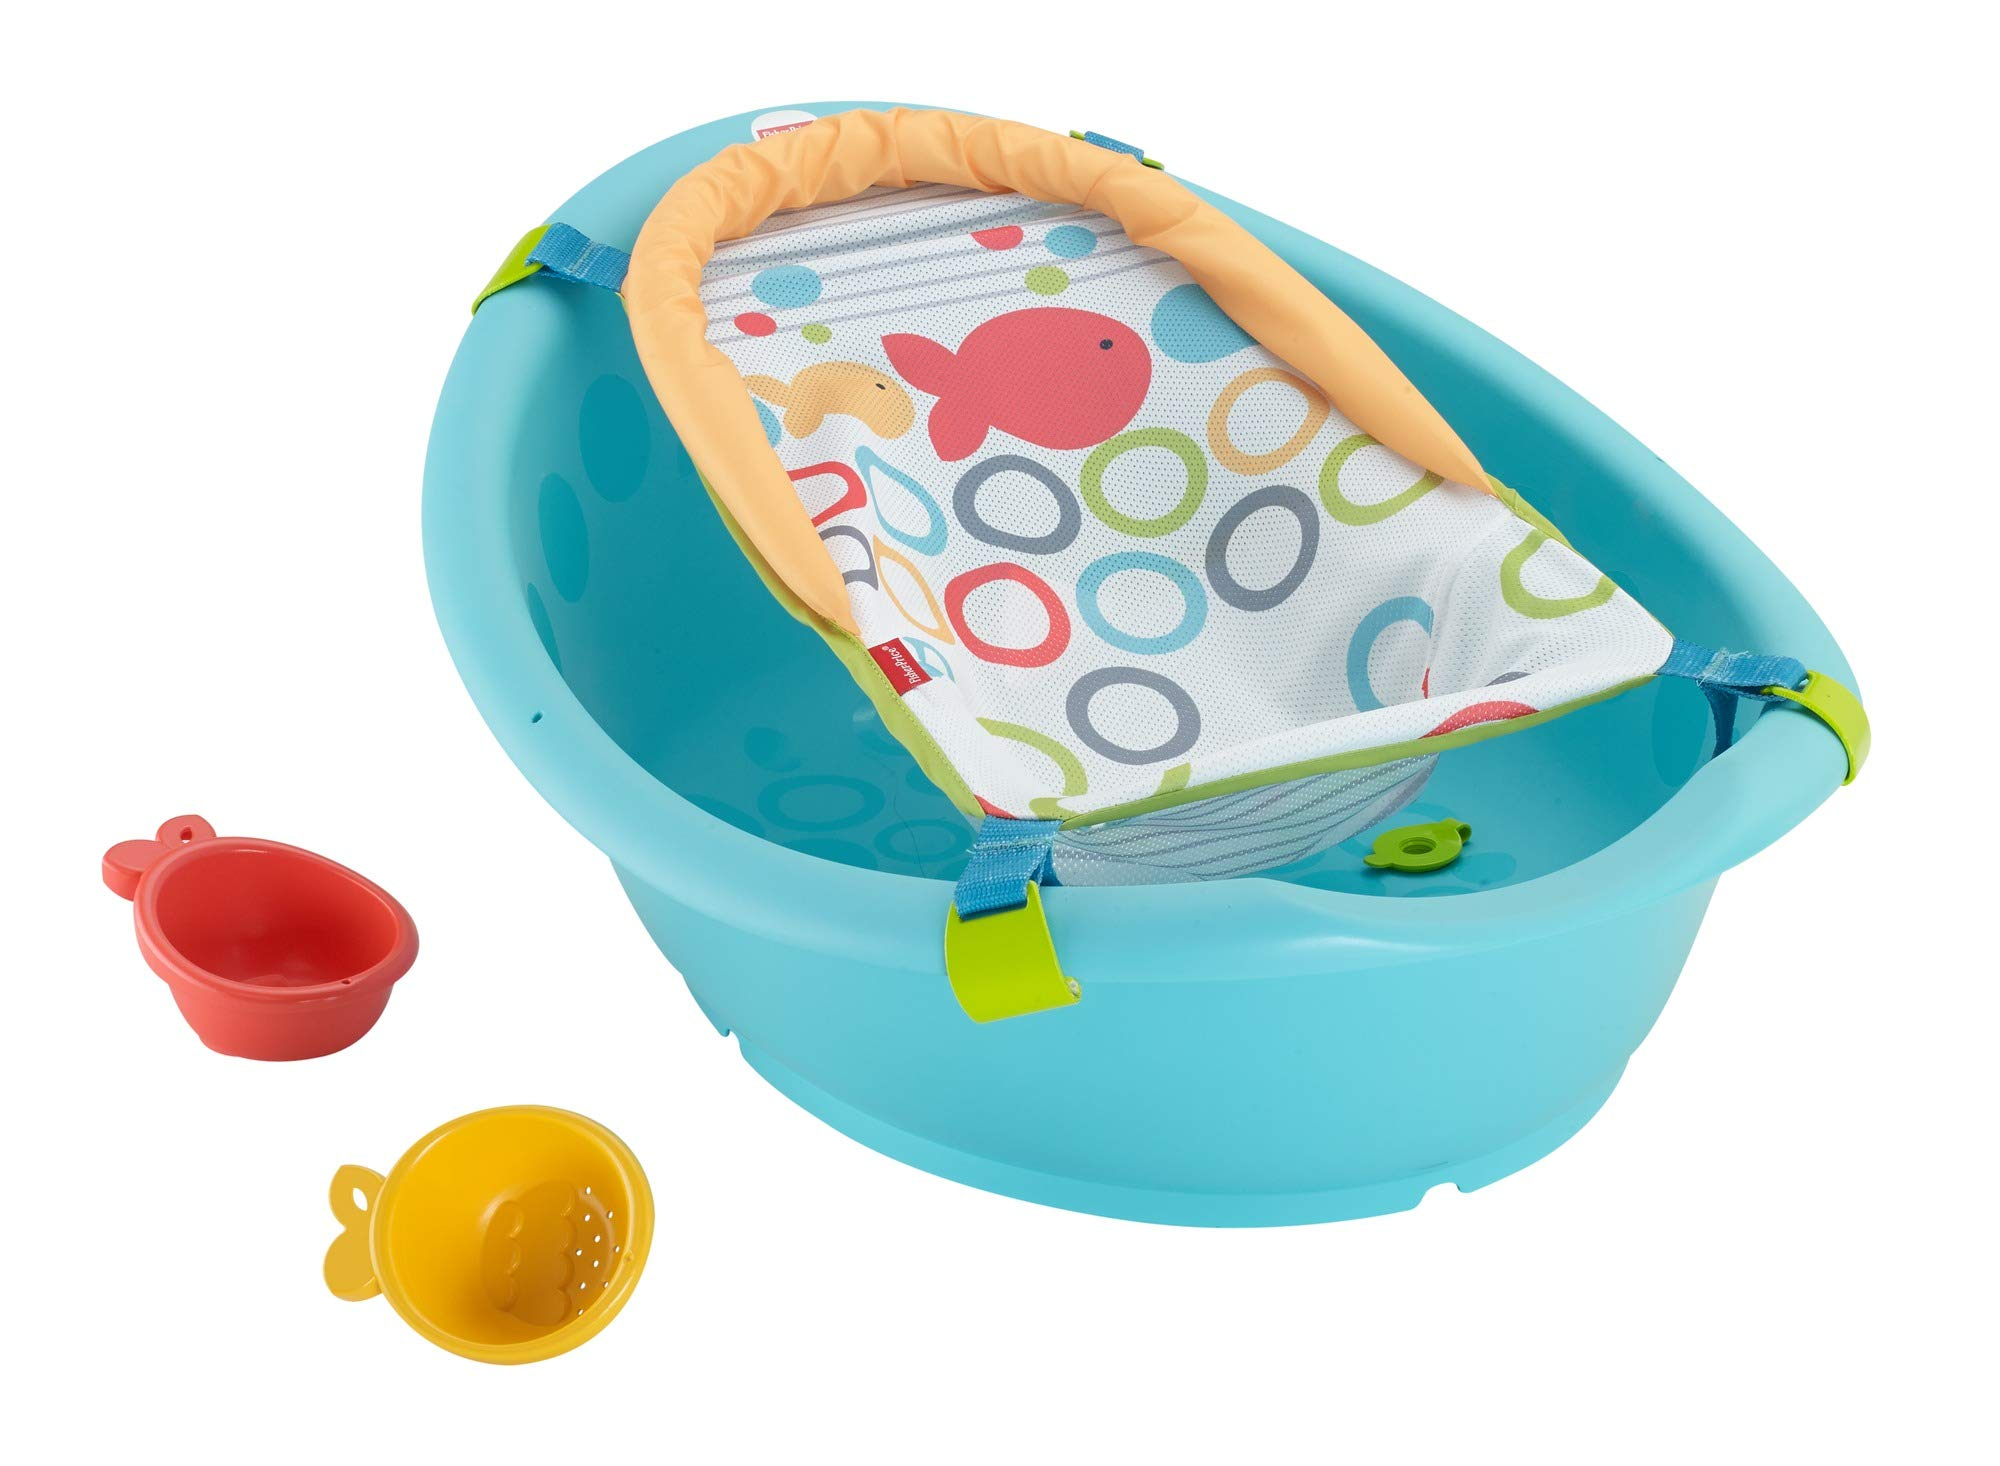 Fisher-Price Rinse and Grow Tub, Grows with Baby from New-born to Toddler with Two Positions and Easy Cleaning, from Birth